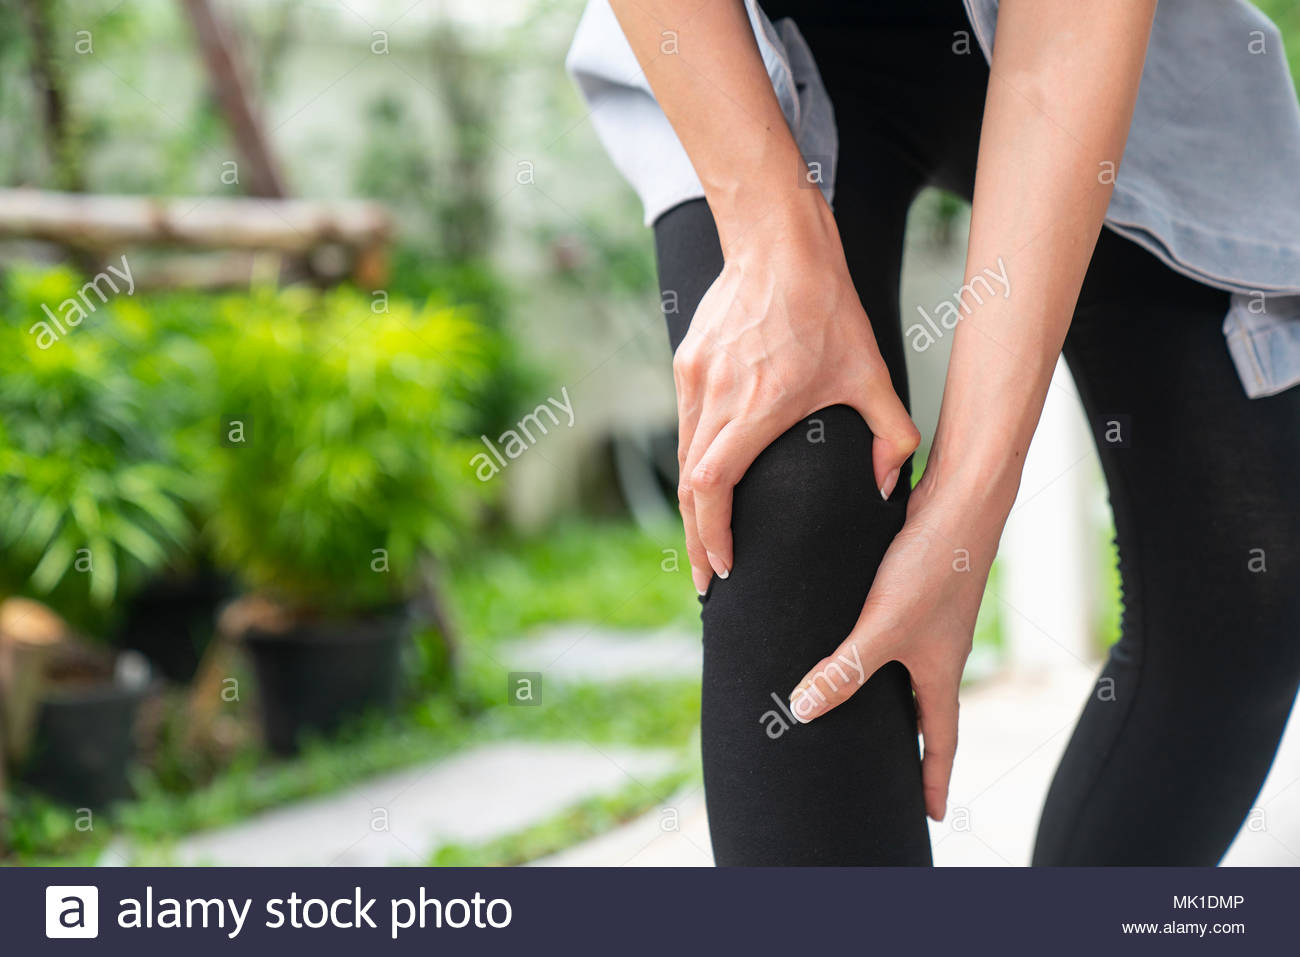 Young woman suffering from pain in knee, close up - Stock Image